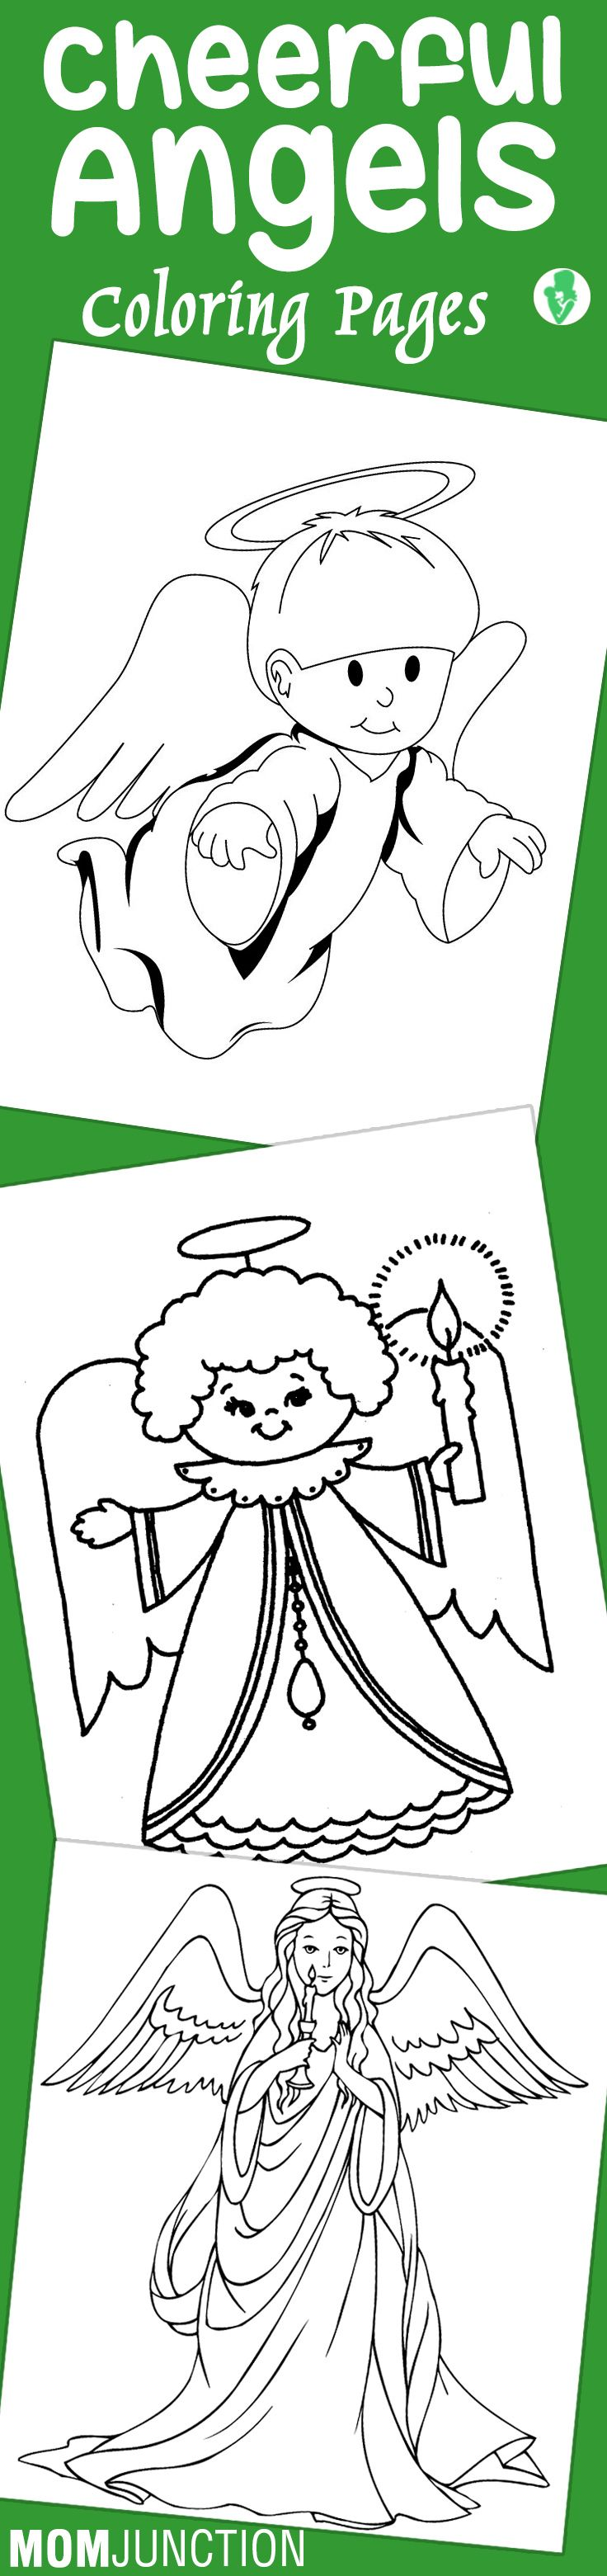 Top 10 Free Printable Cheerful Angel Coloring Pages Online ...